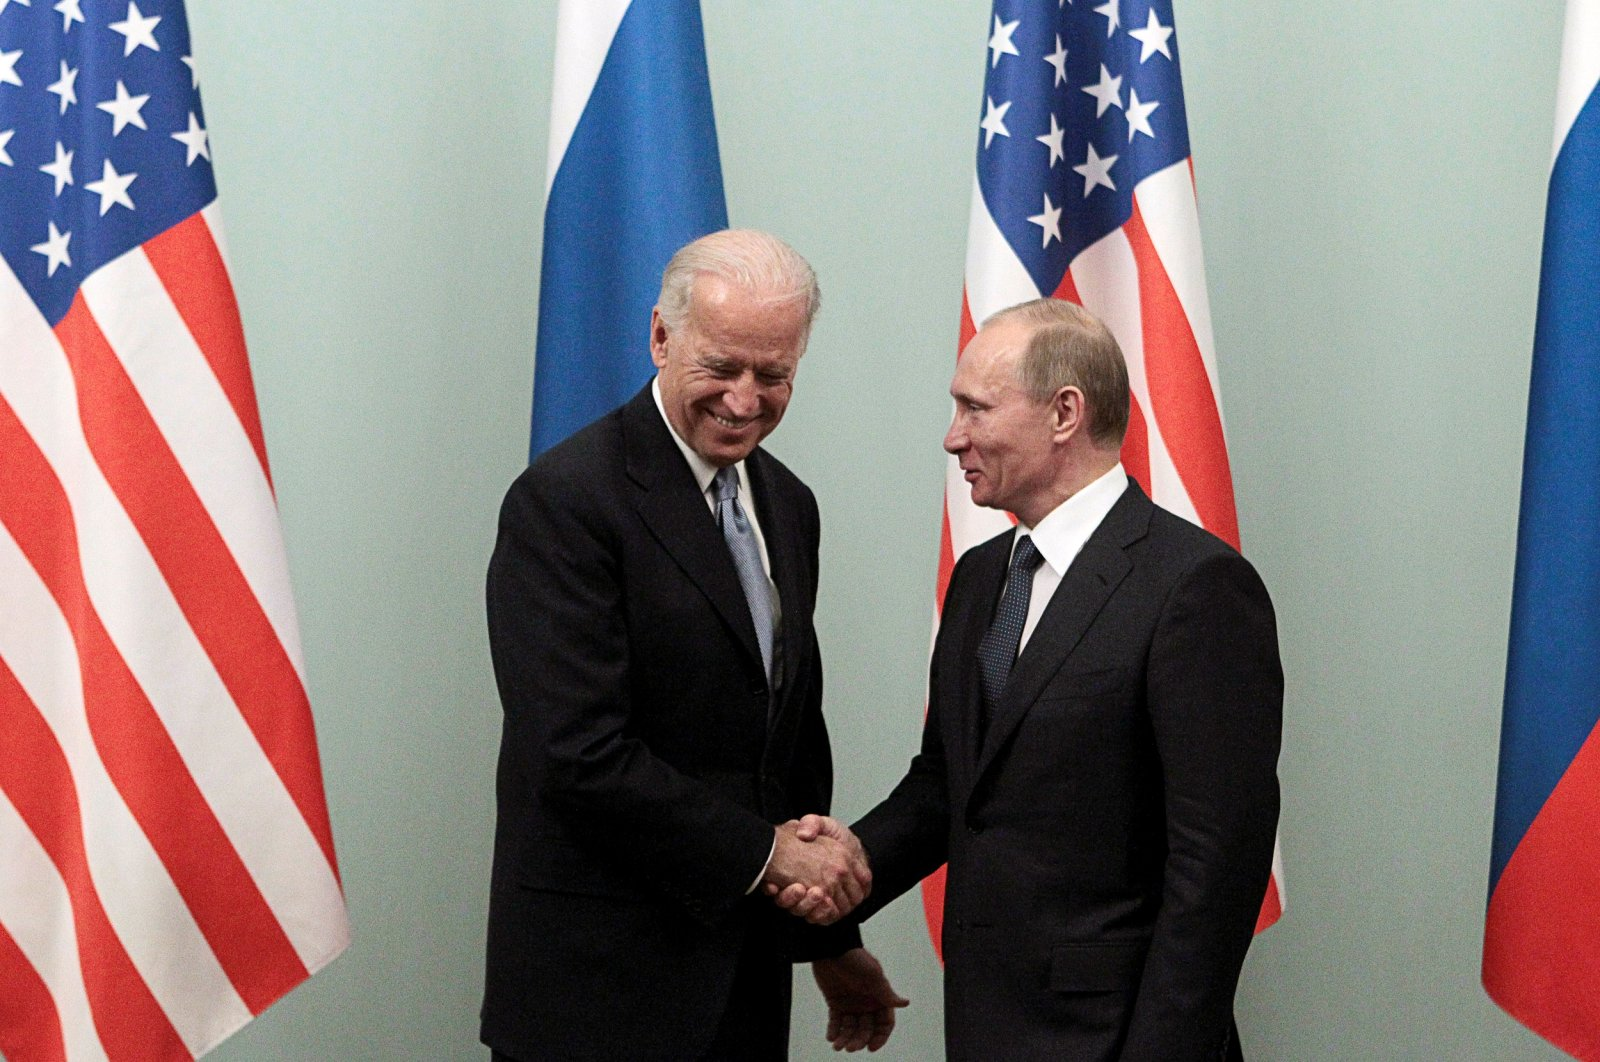 Russia's then-Prime Minister Vladimir Putin (R) shakes hands with U.S.' then-Vice President Joe Biden during their meeting in Moscow March 10, 2011. (Reuters File Photo)